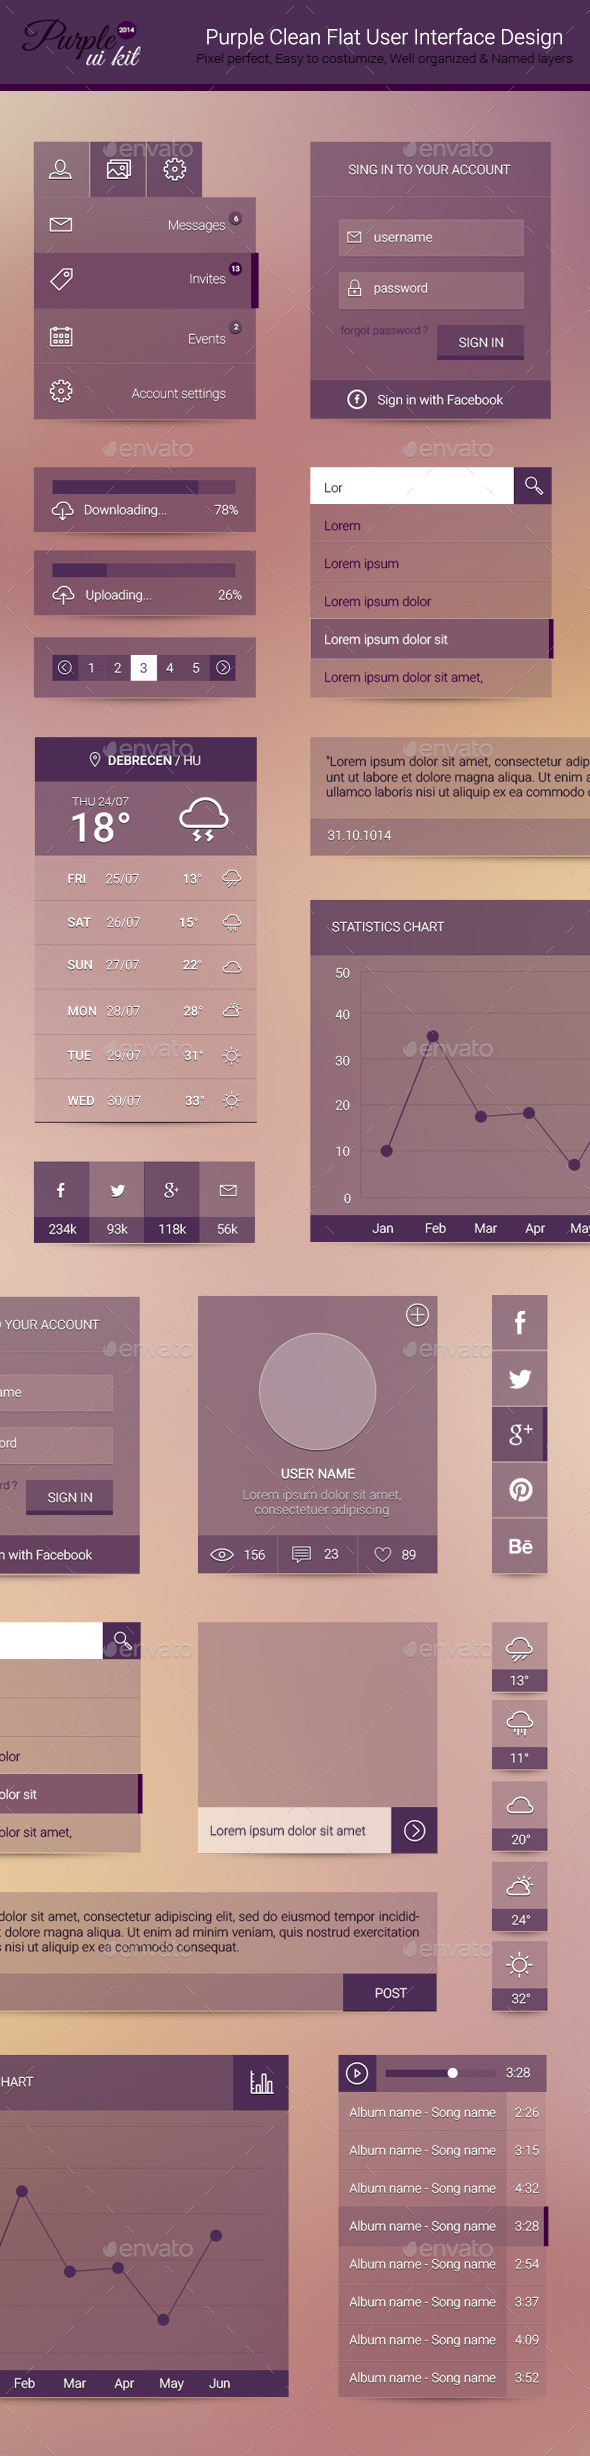 Purple Clean Flat User Interface Design